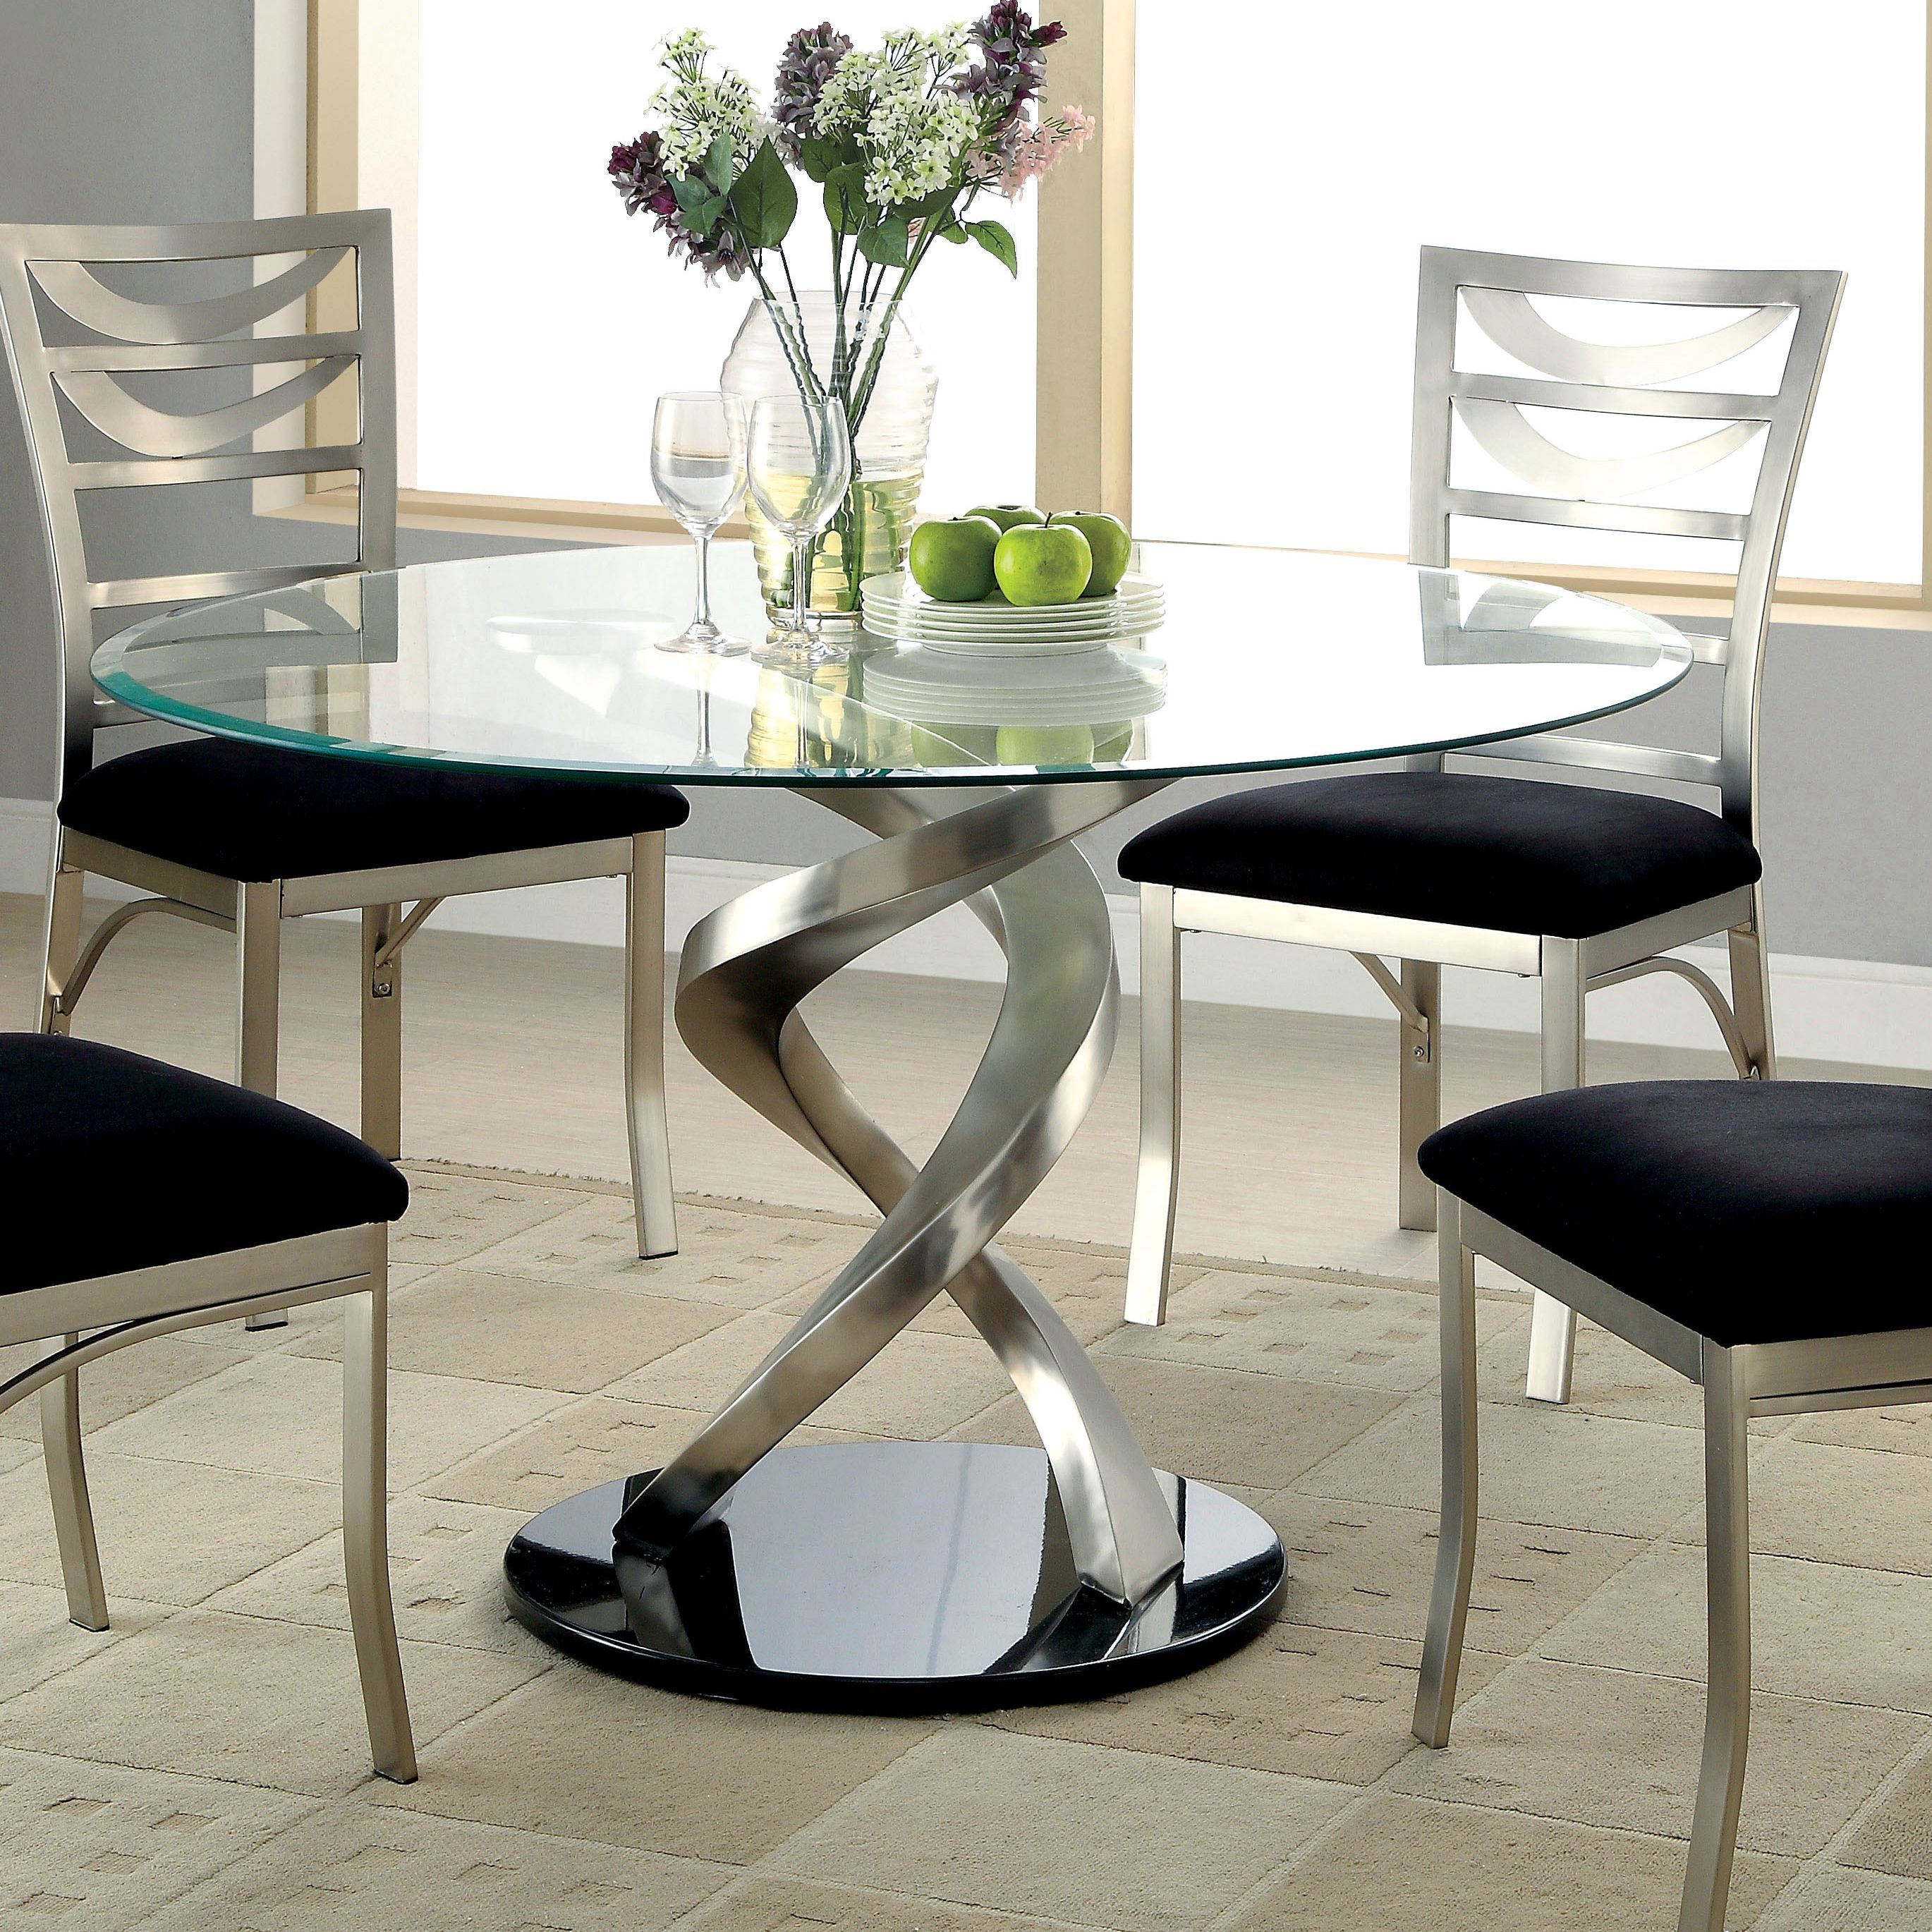 Bring modern sculpture designs to the dining room with for Round glass dining table